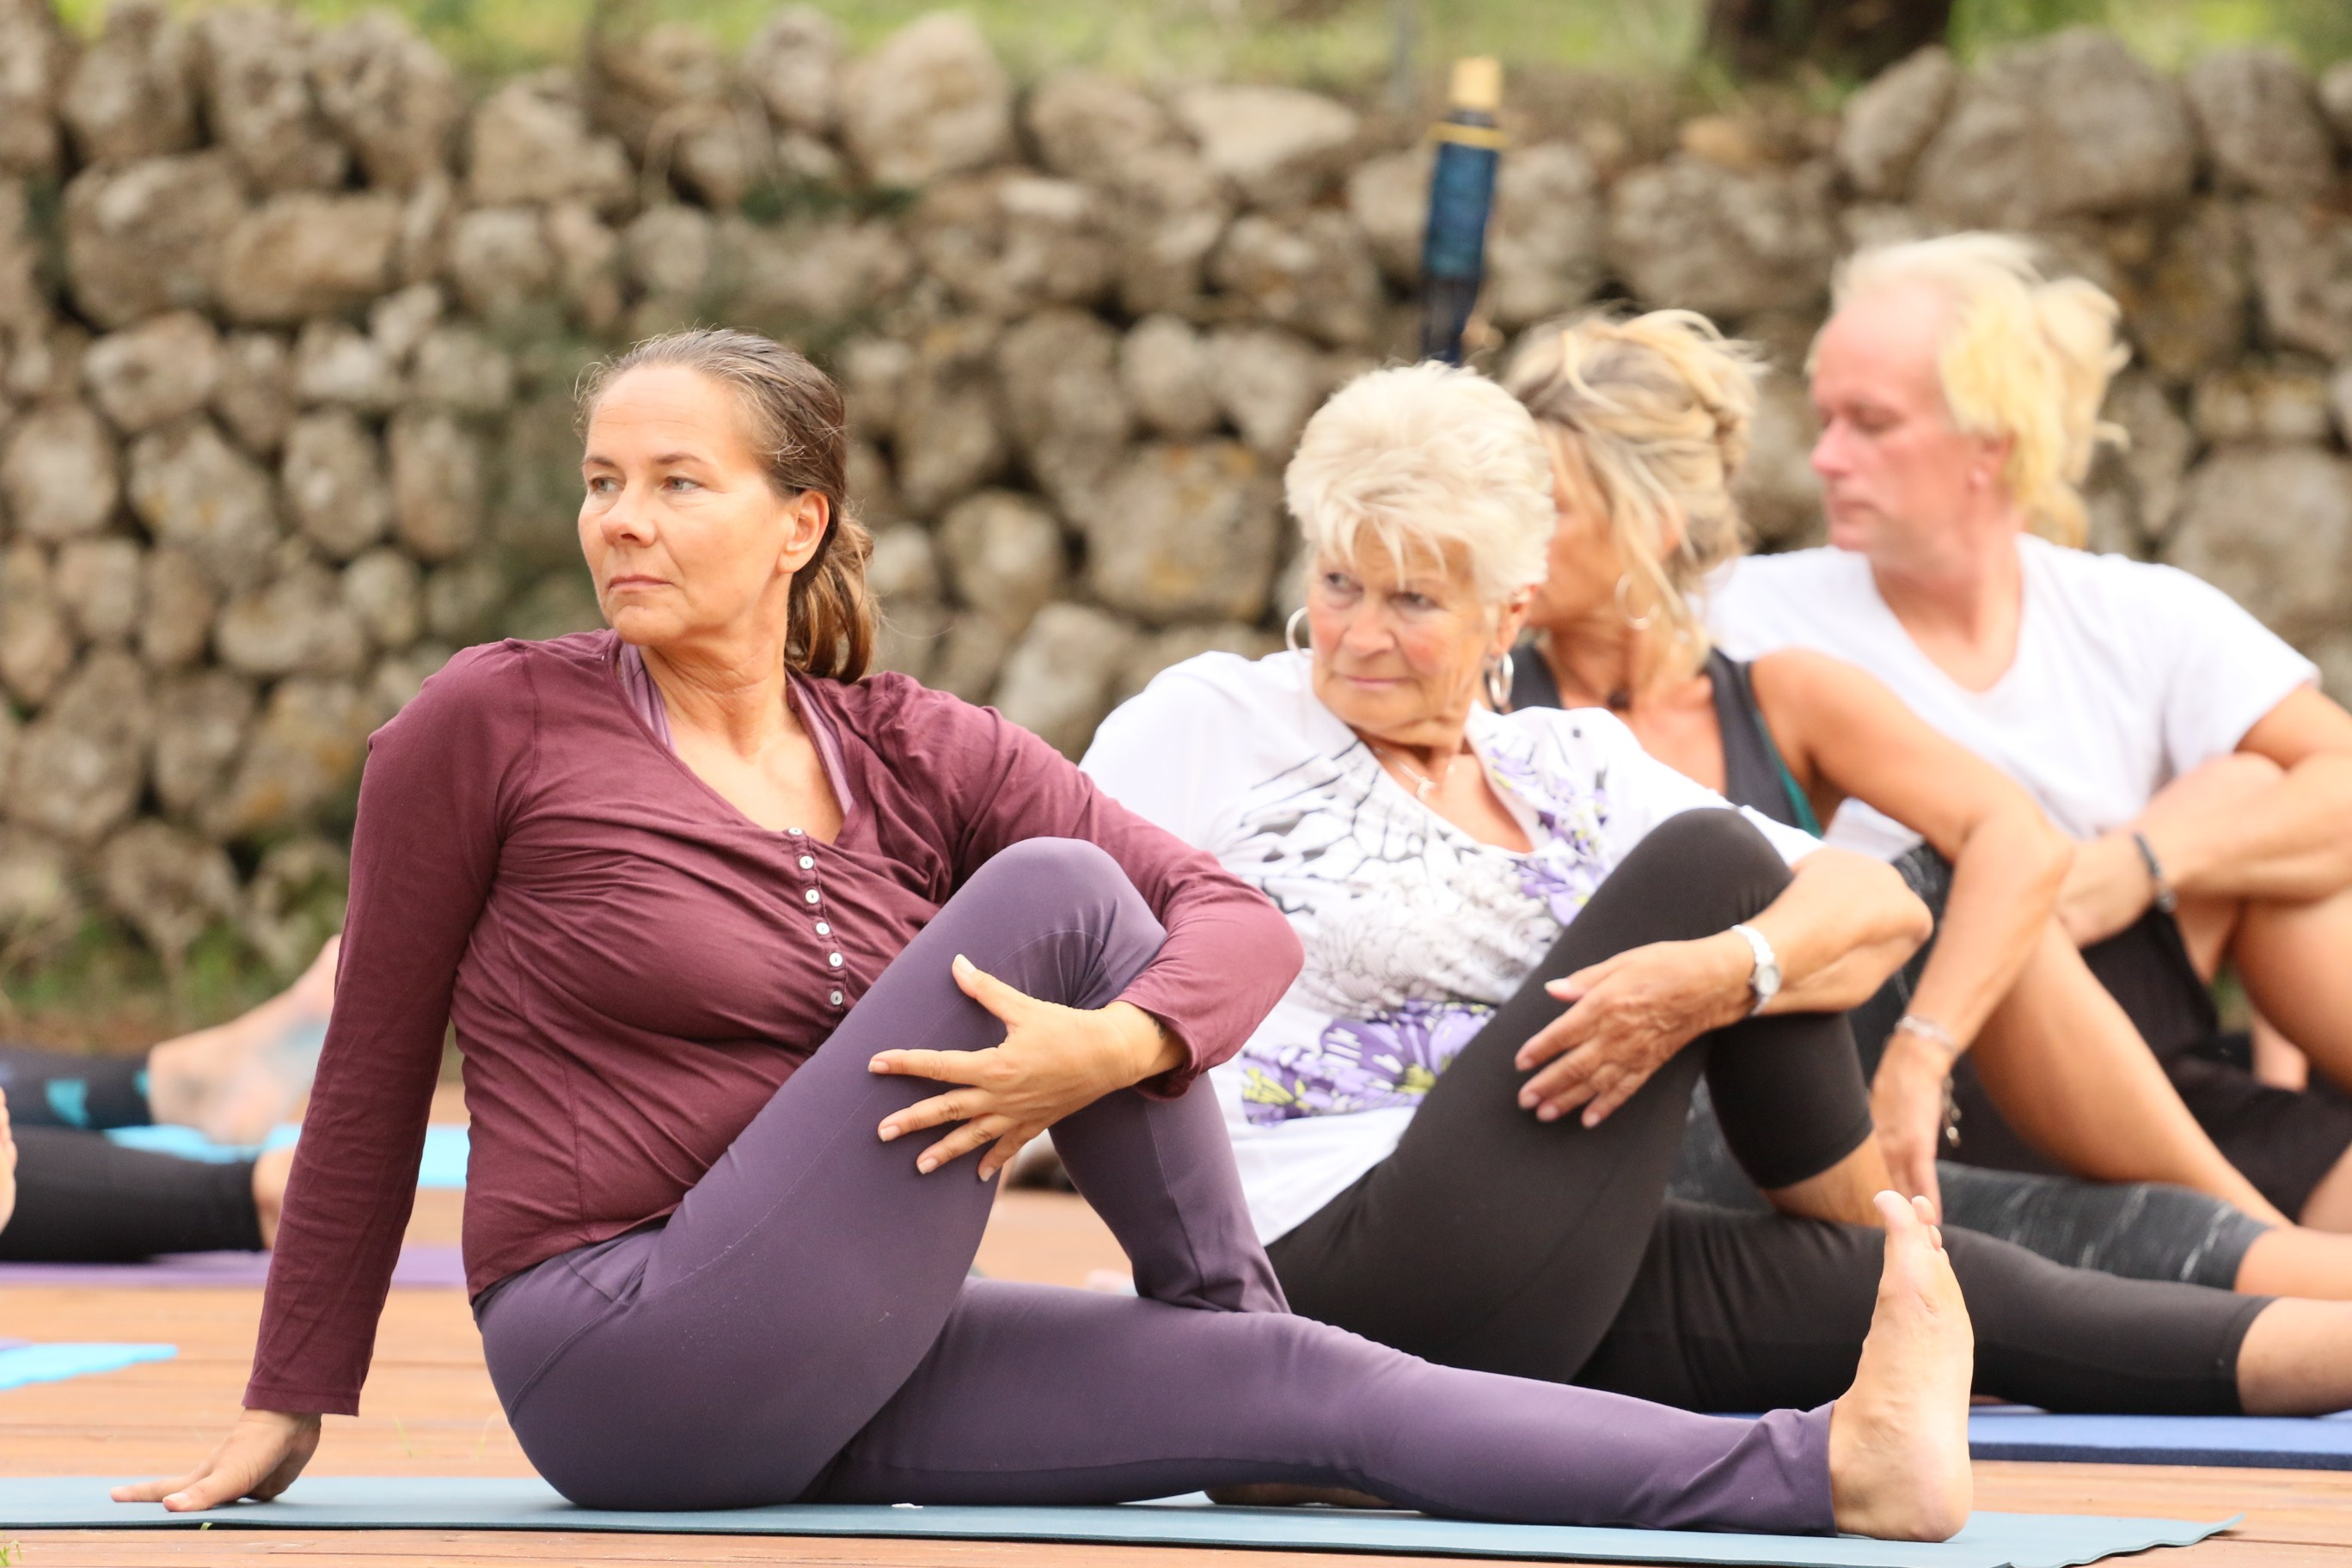 Some Reasons You Should Take Your Yoga Practice Outside